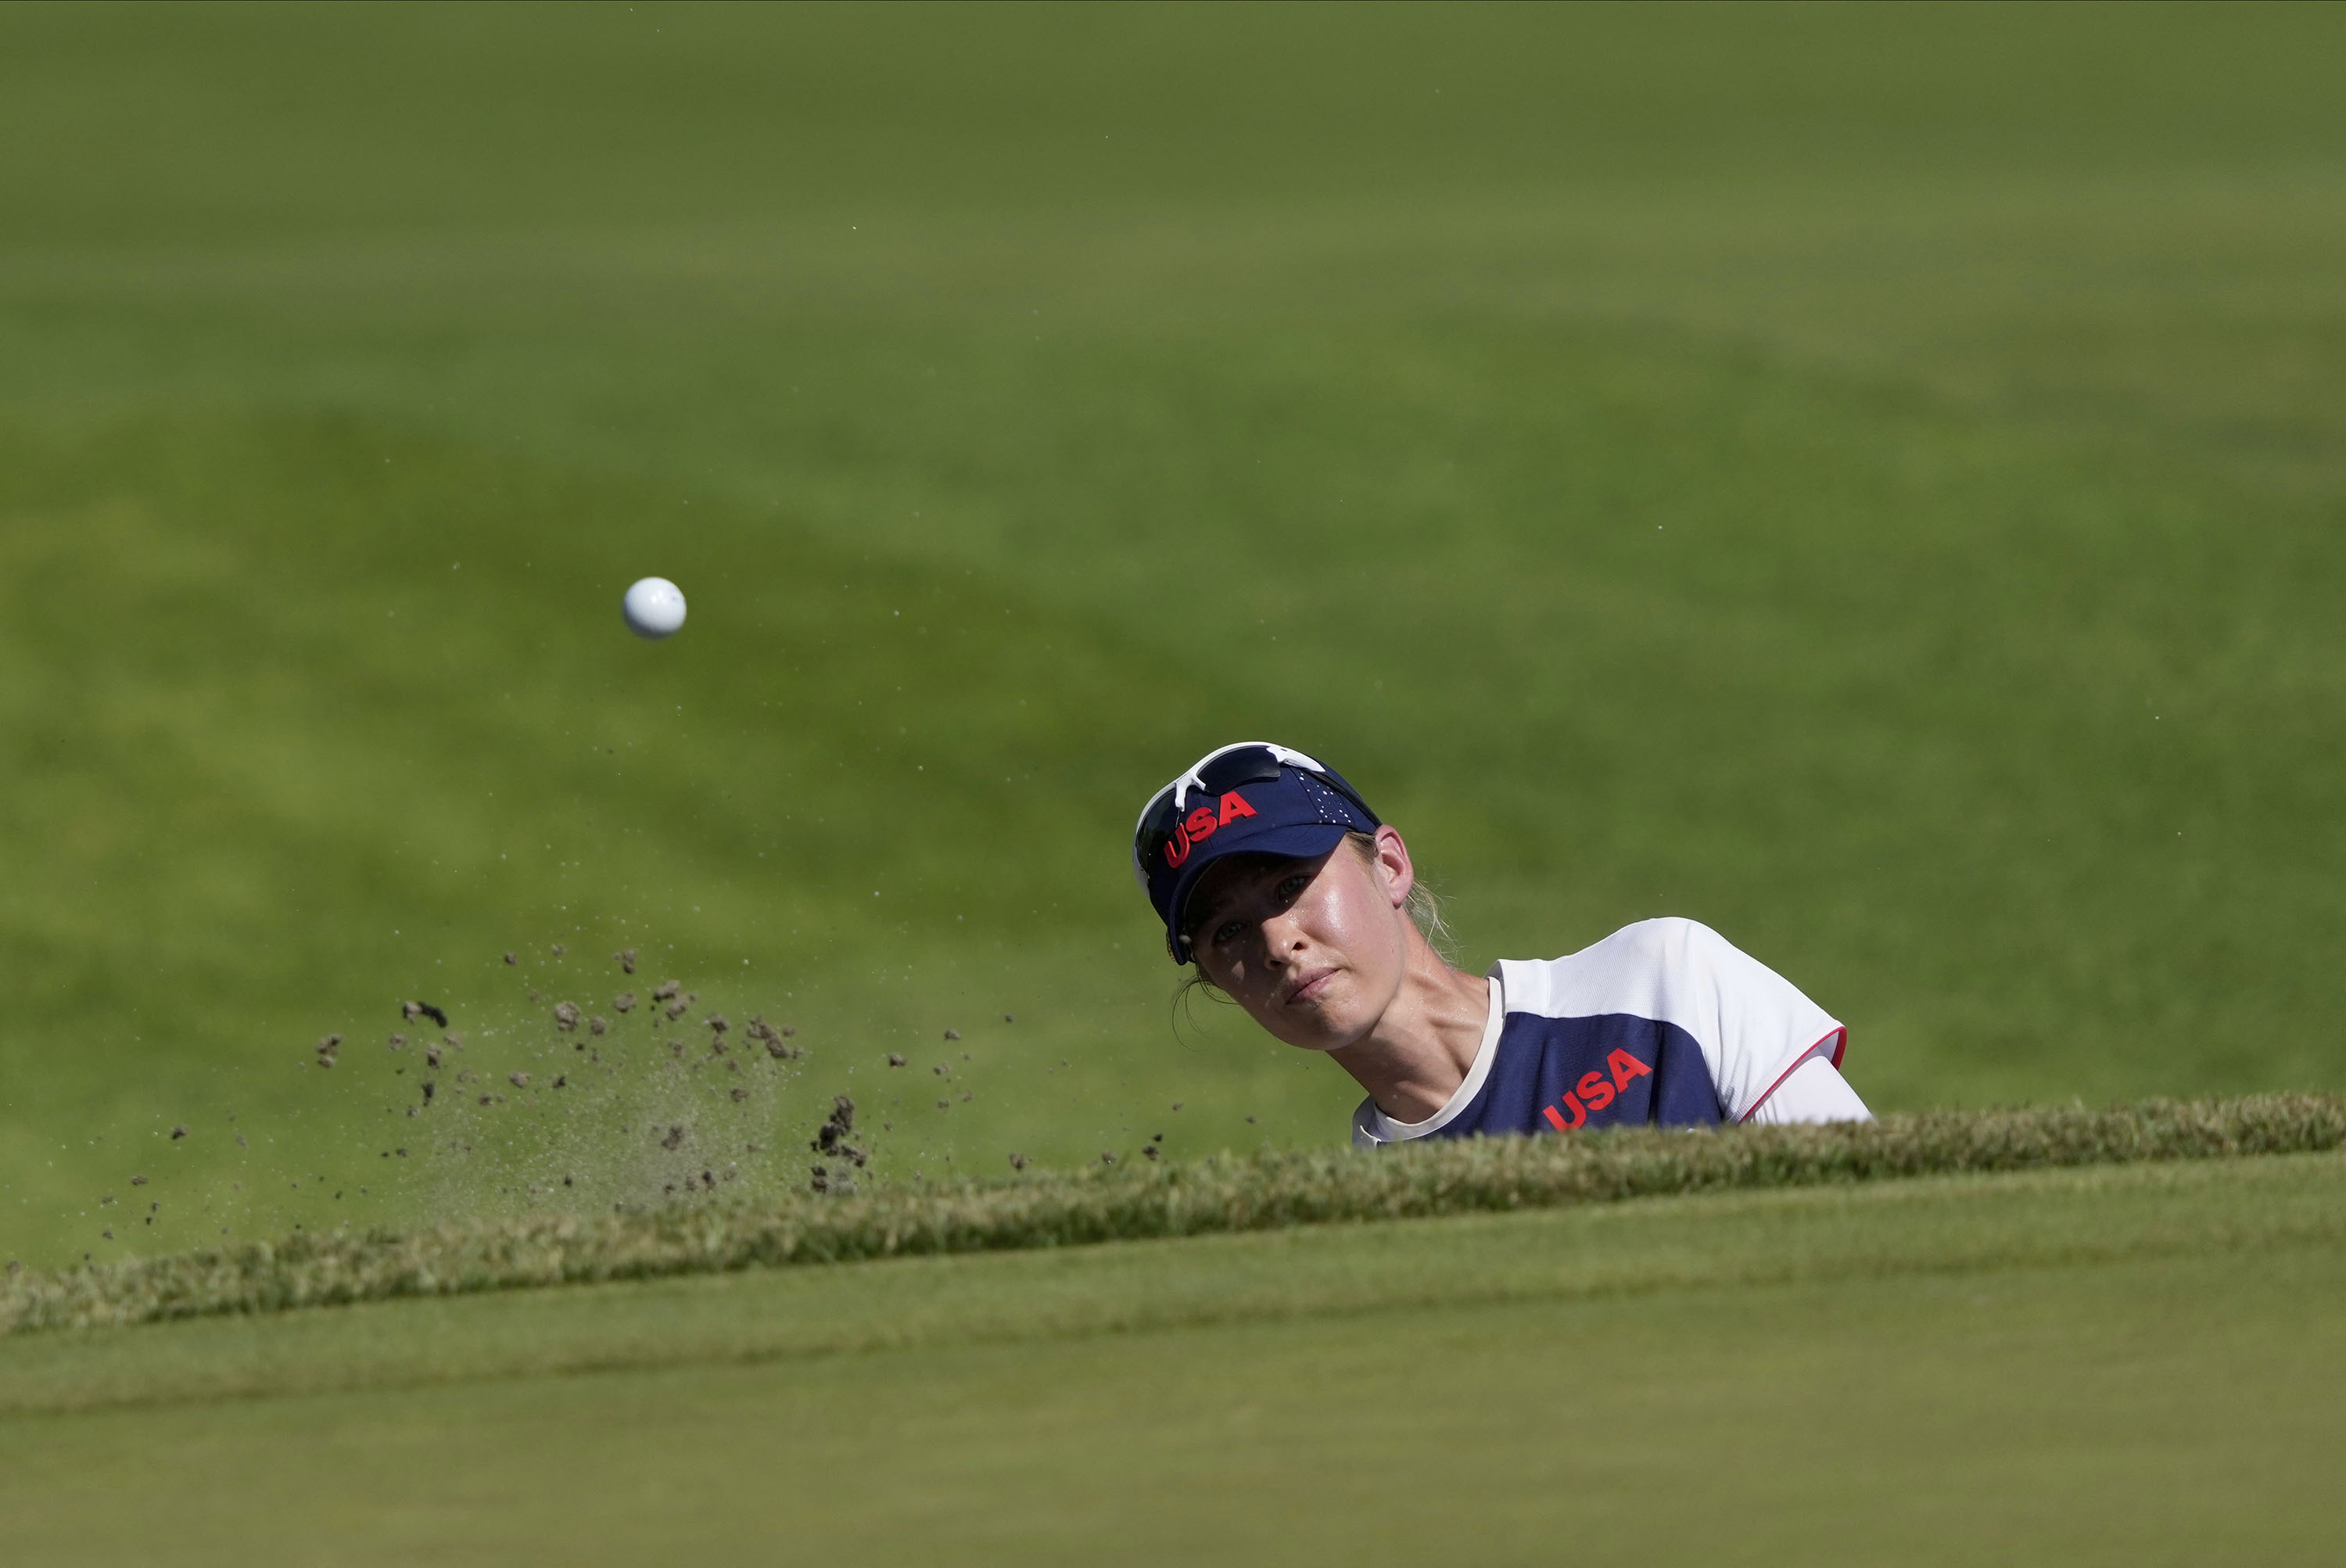 Nelly Korda of the United States plays a shot from a bunker on the 18th hole during the second round of the women's golf event on Thursday.